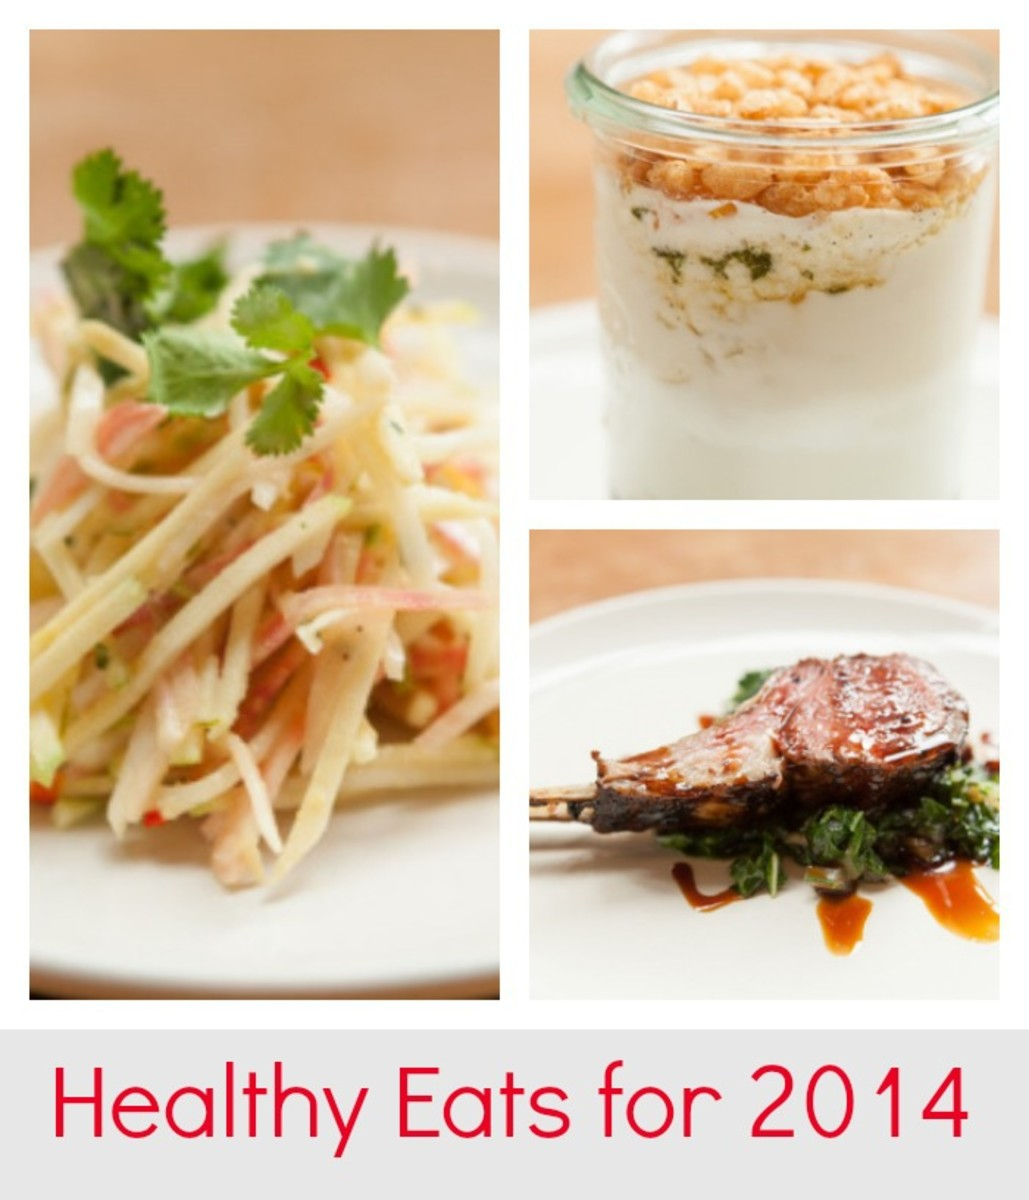 Healthy Eats for 2014